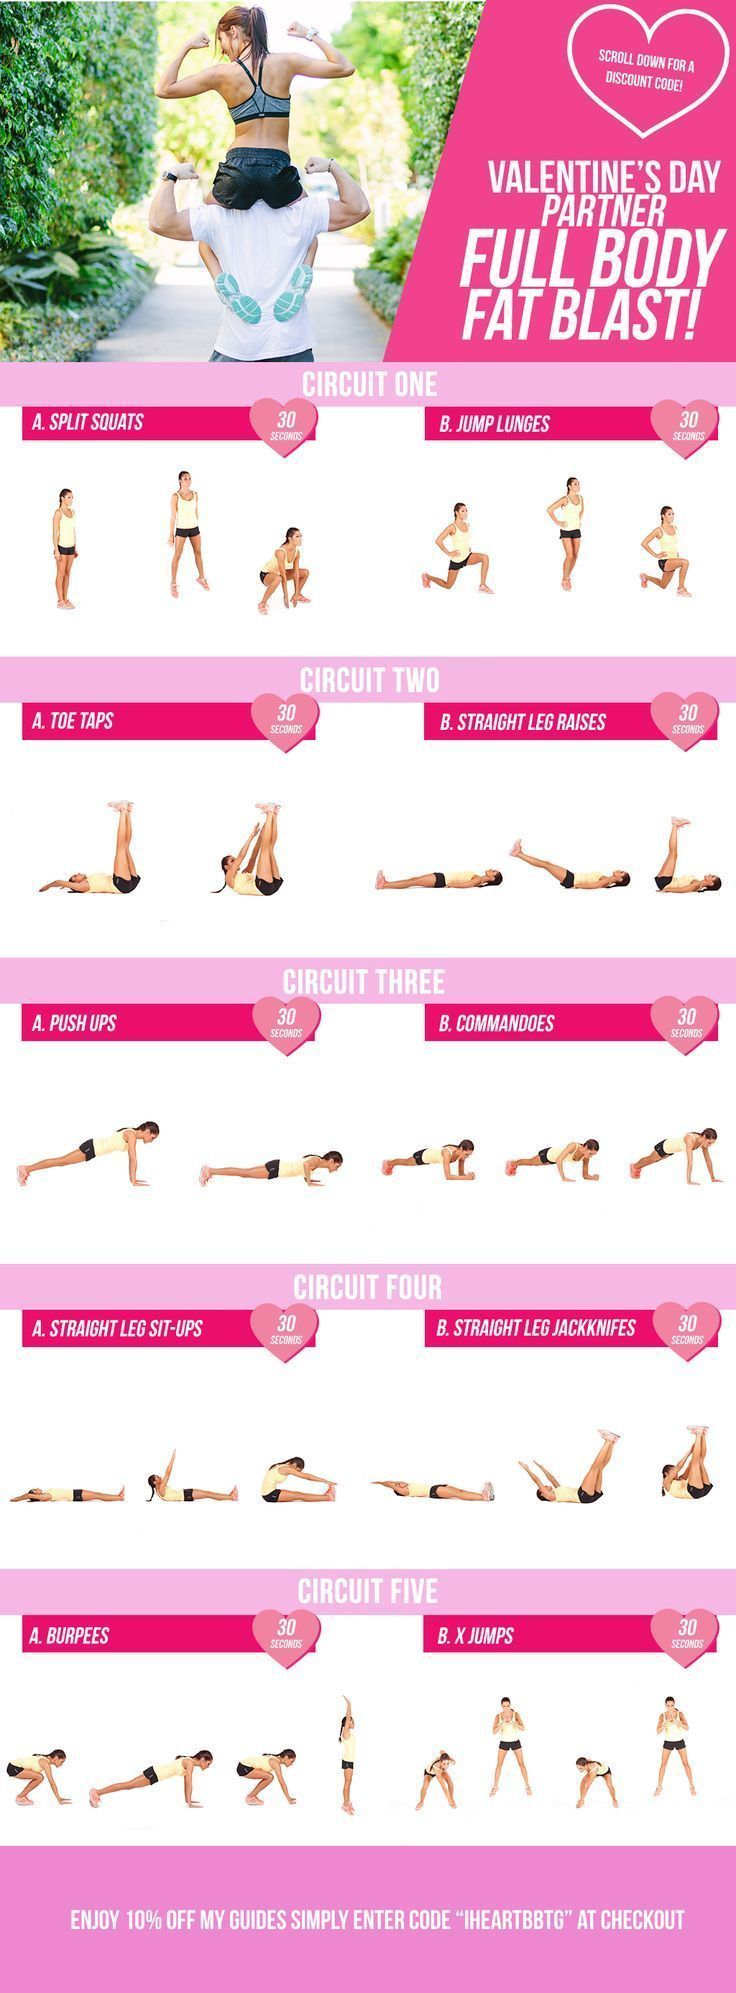 Valentines Day Fat Blasting Partner Workout! – Kayla Itsines